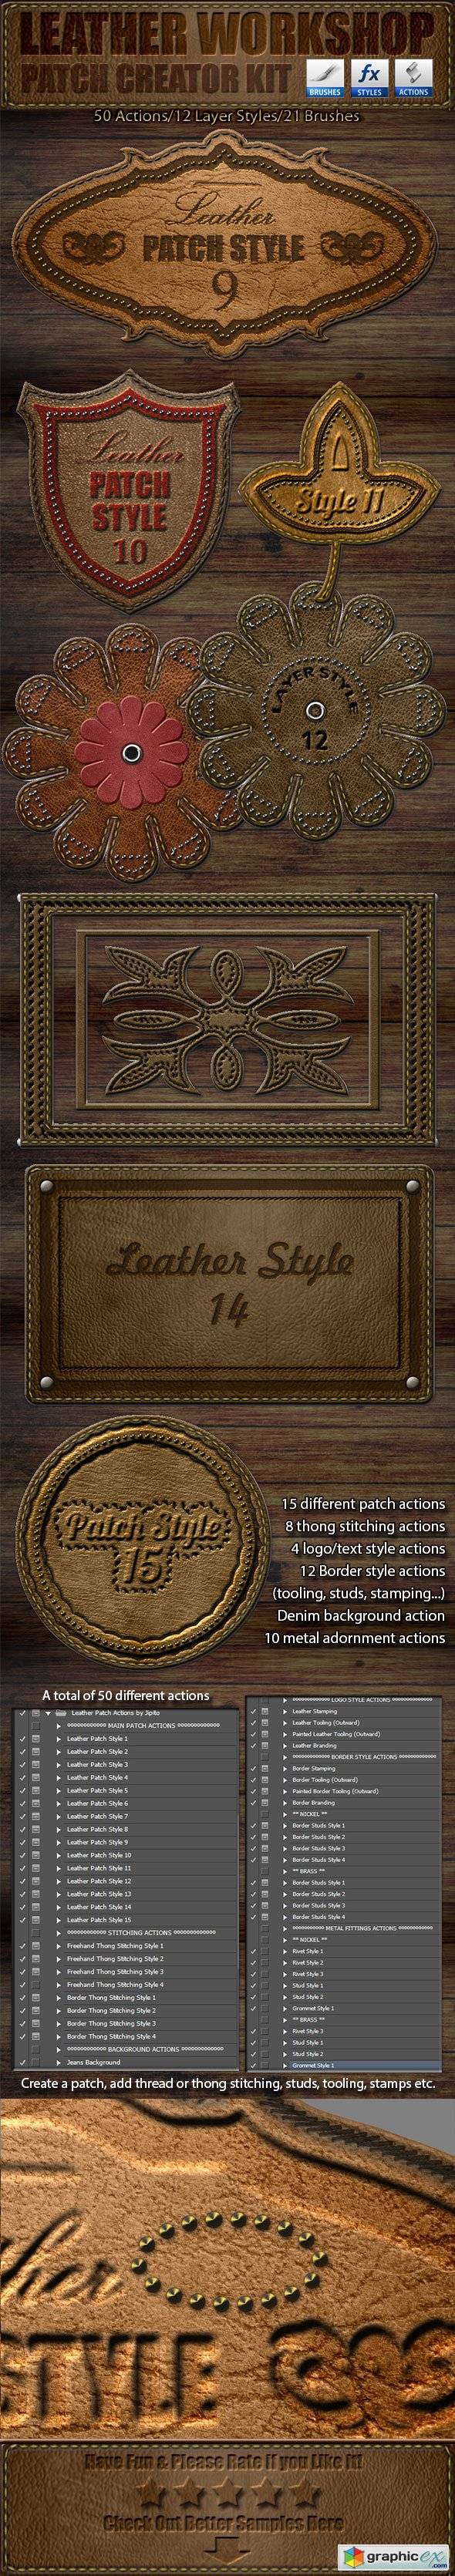 Leather Workshop Patch Creator Kit